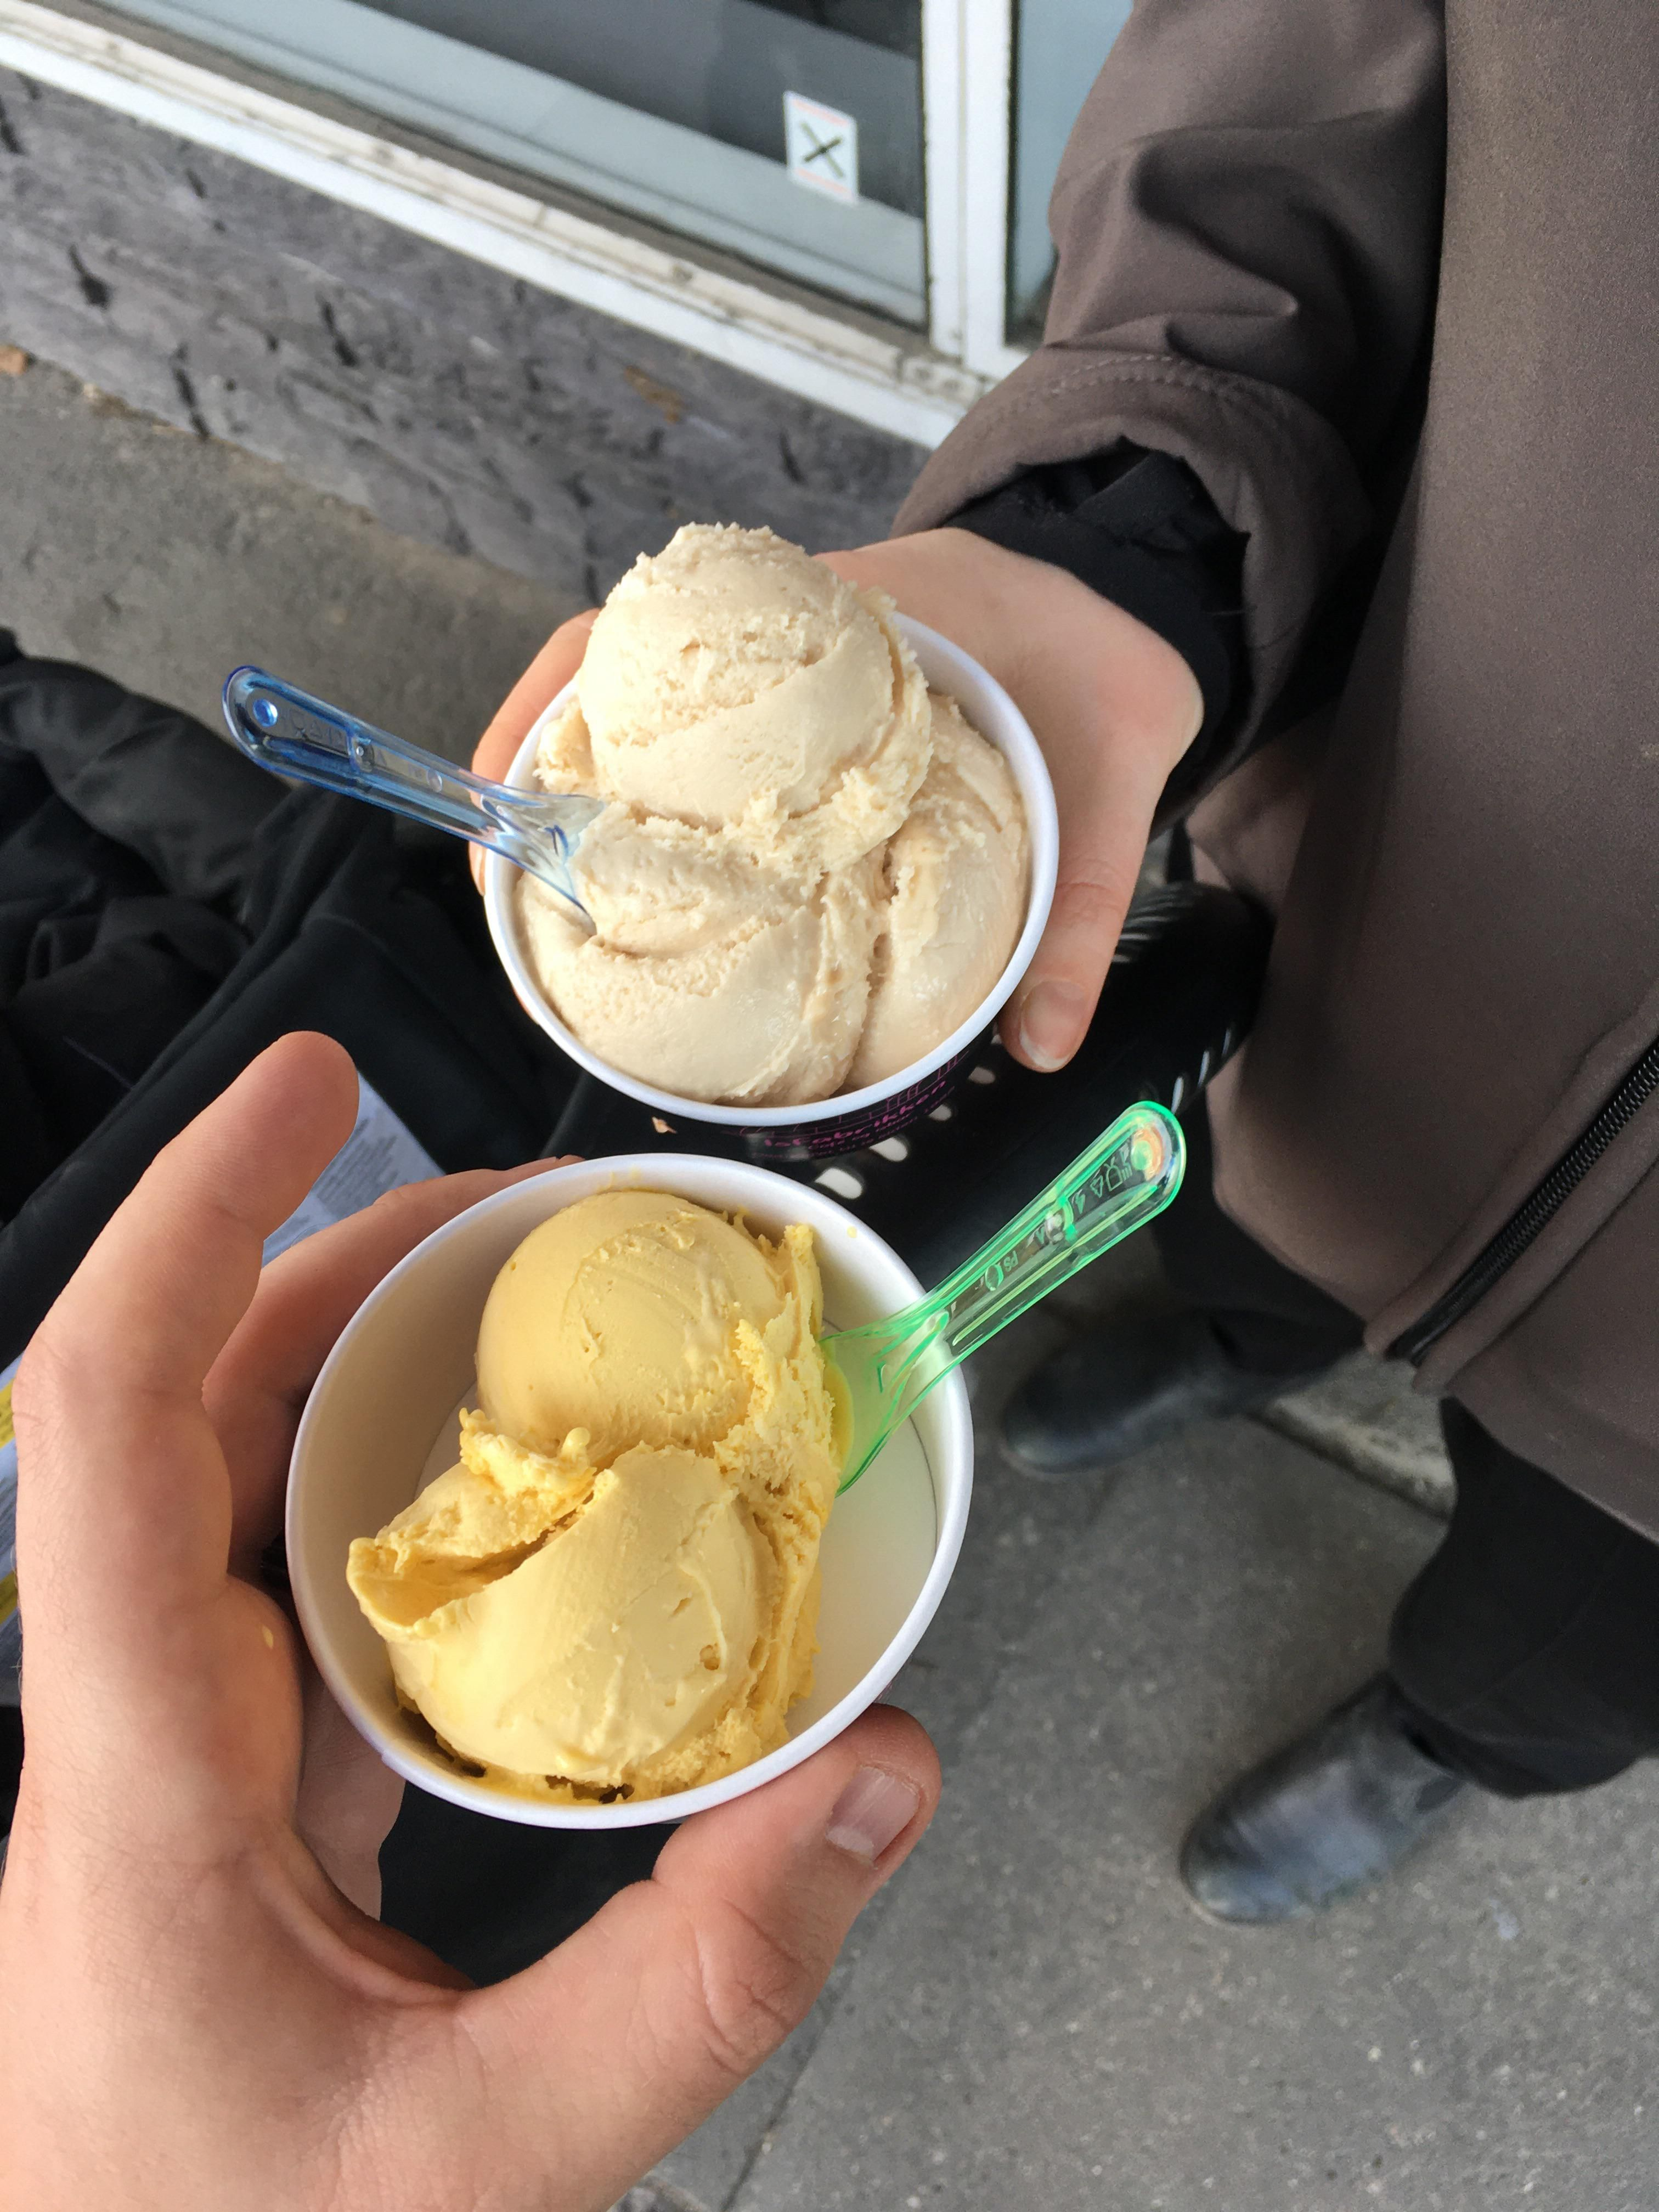 We both ordered one scoop of ice cream. I think the ice cream vendor likes my wife.